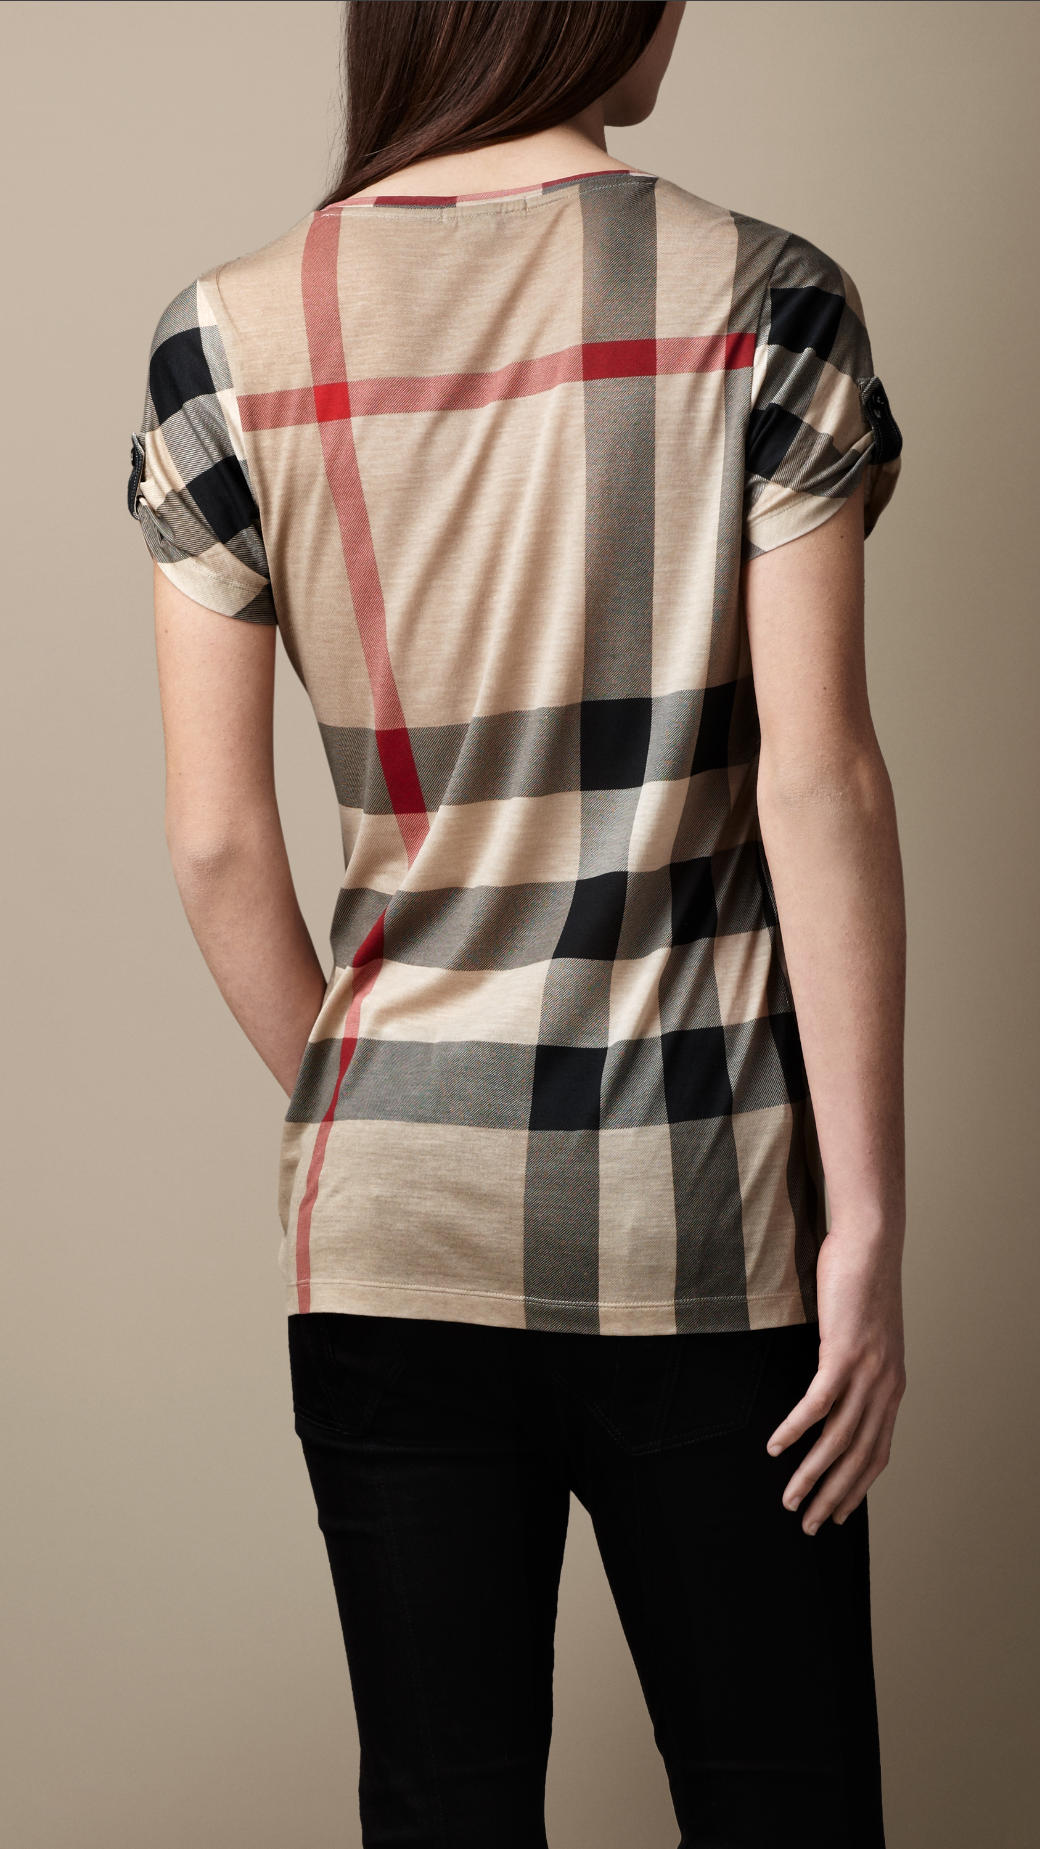 burberry wallet sale outlet saww  burberry print t shirt